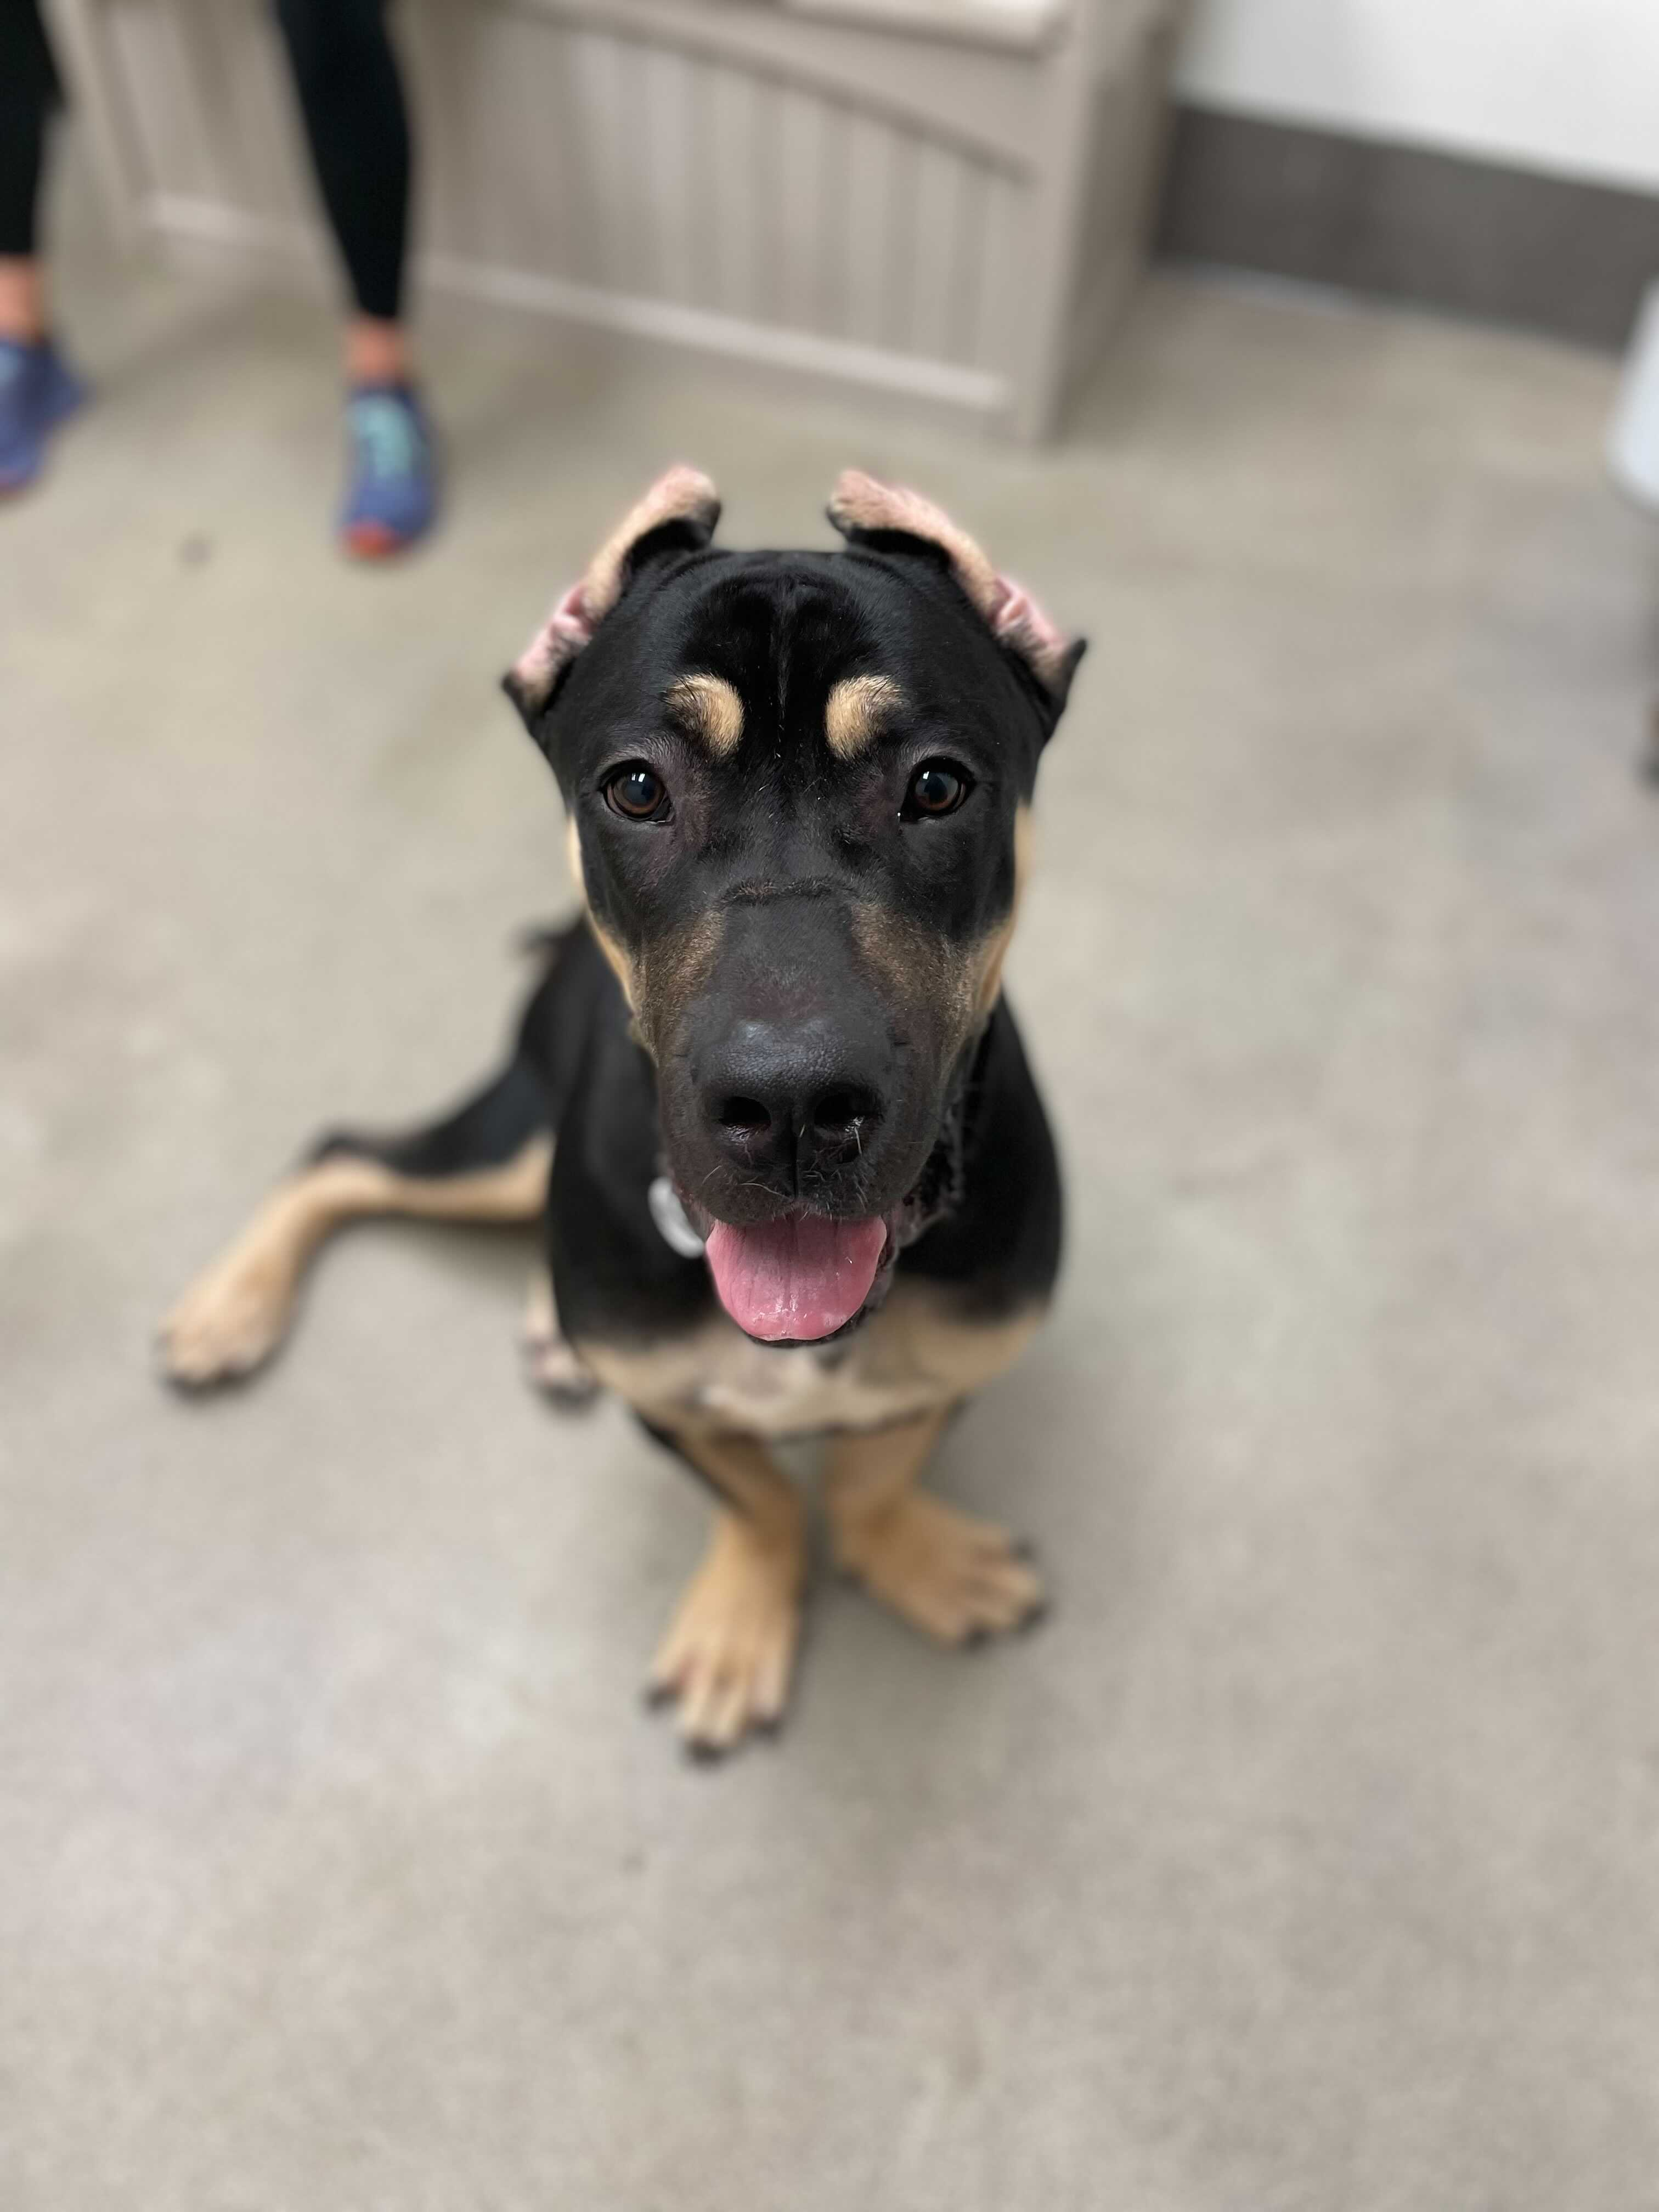 Image of dog from adoptable dogs list